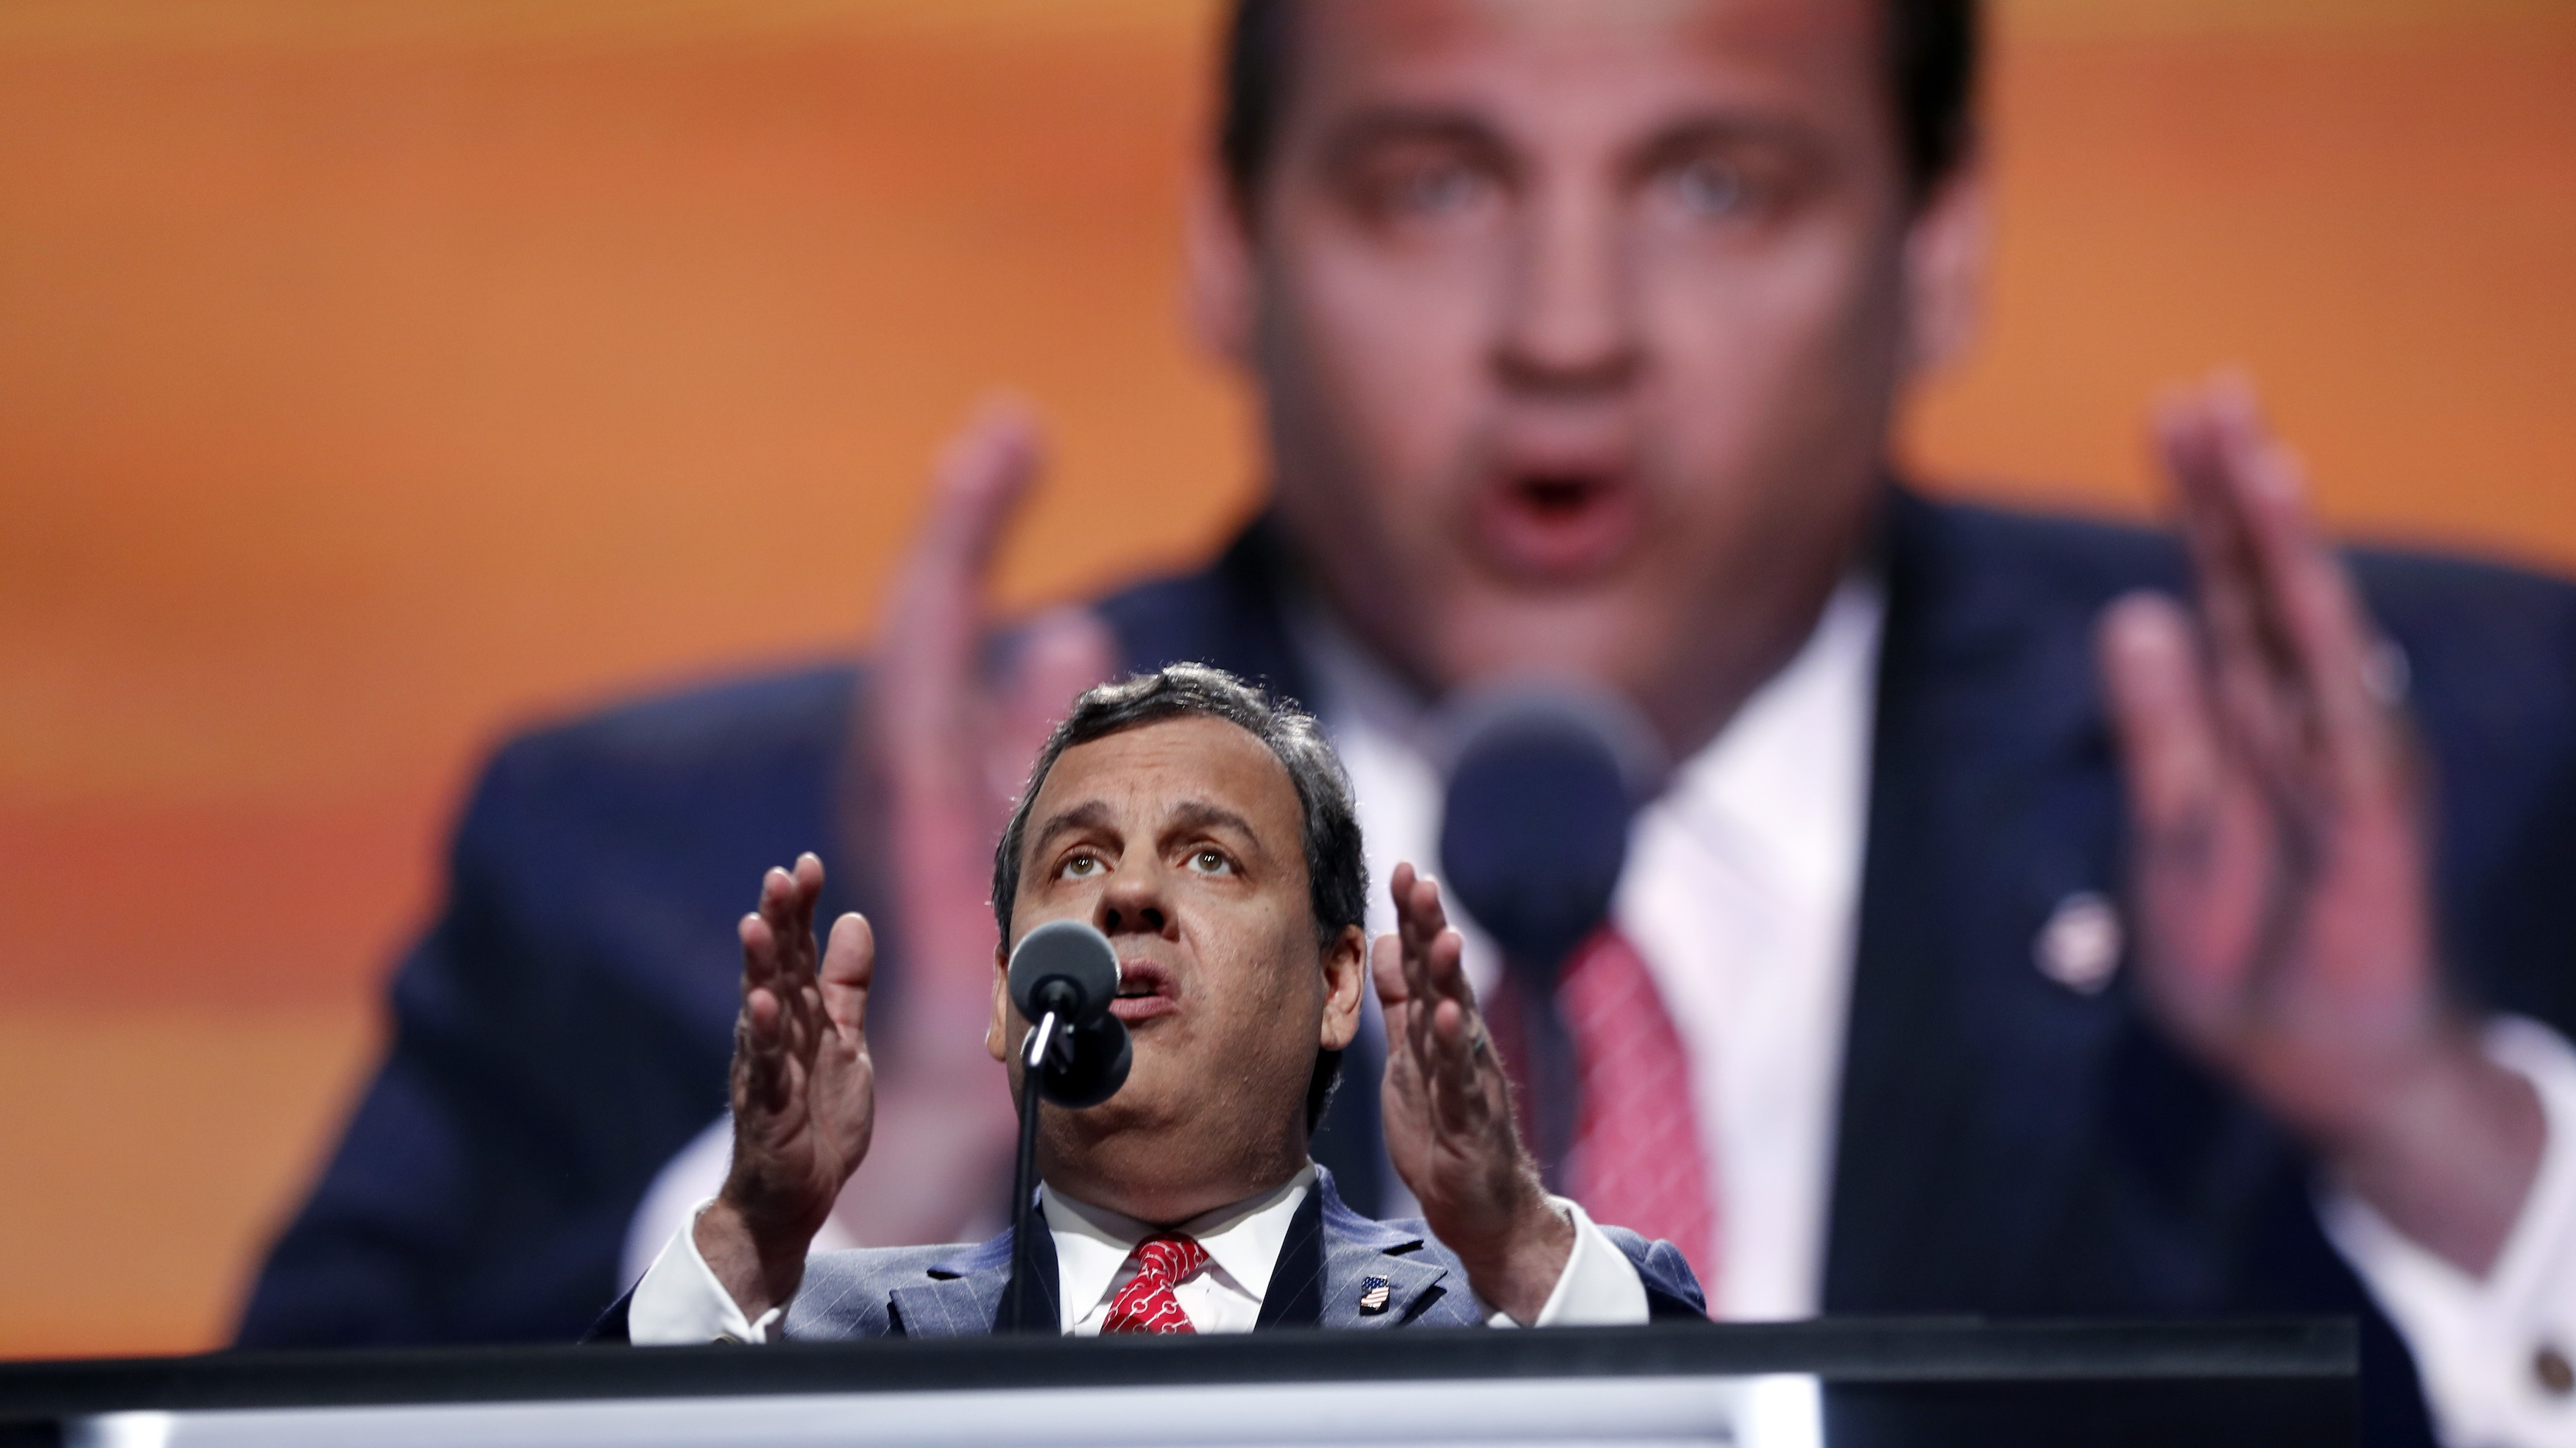 """New Jersey governor Chris Christie """"prosecutes"""" Hillary Clinton, in absentia, for crimes against the world."""